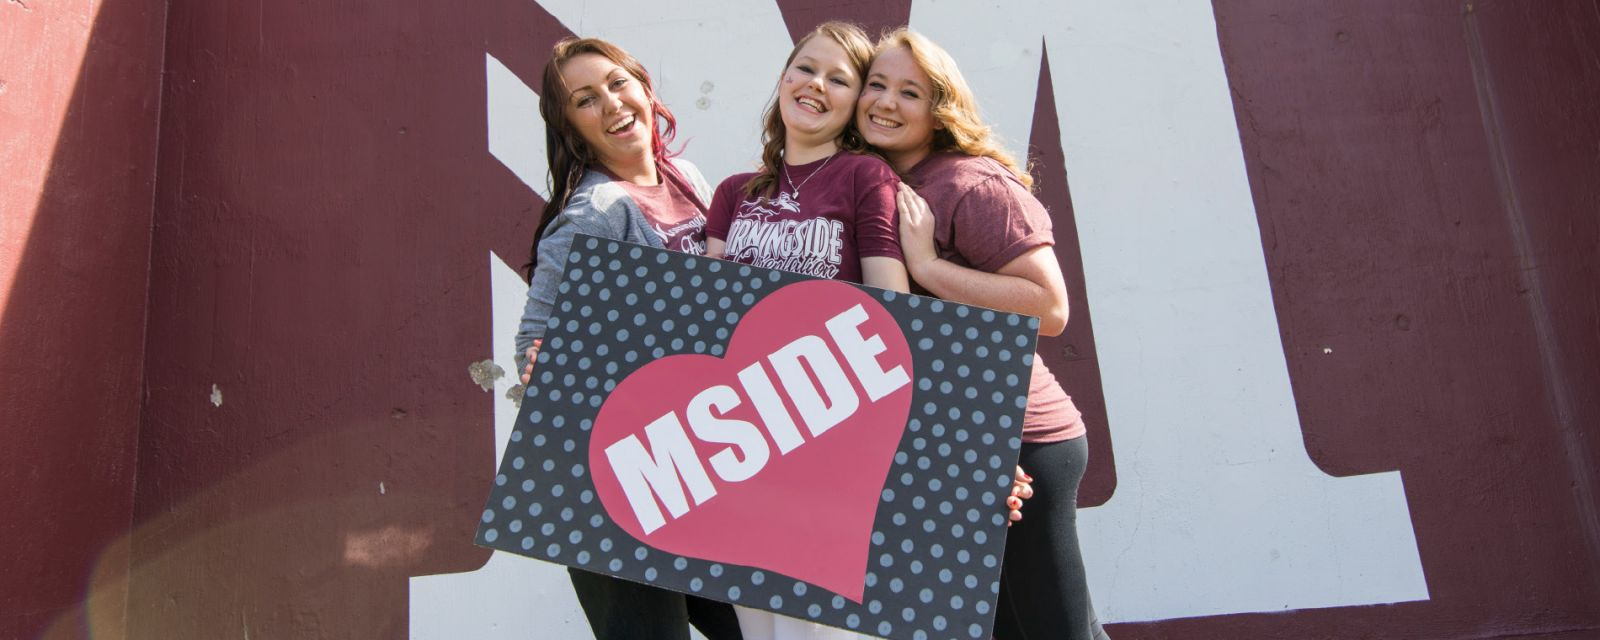 students with mside sign